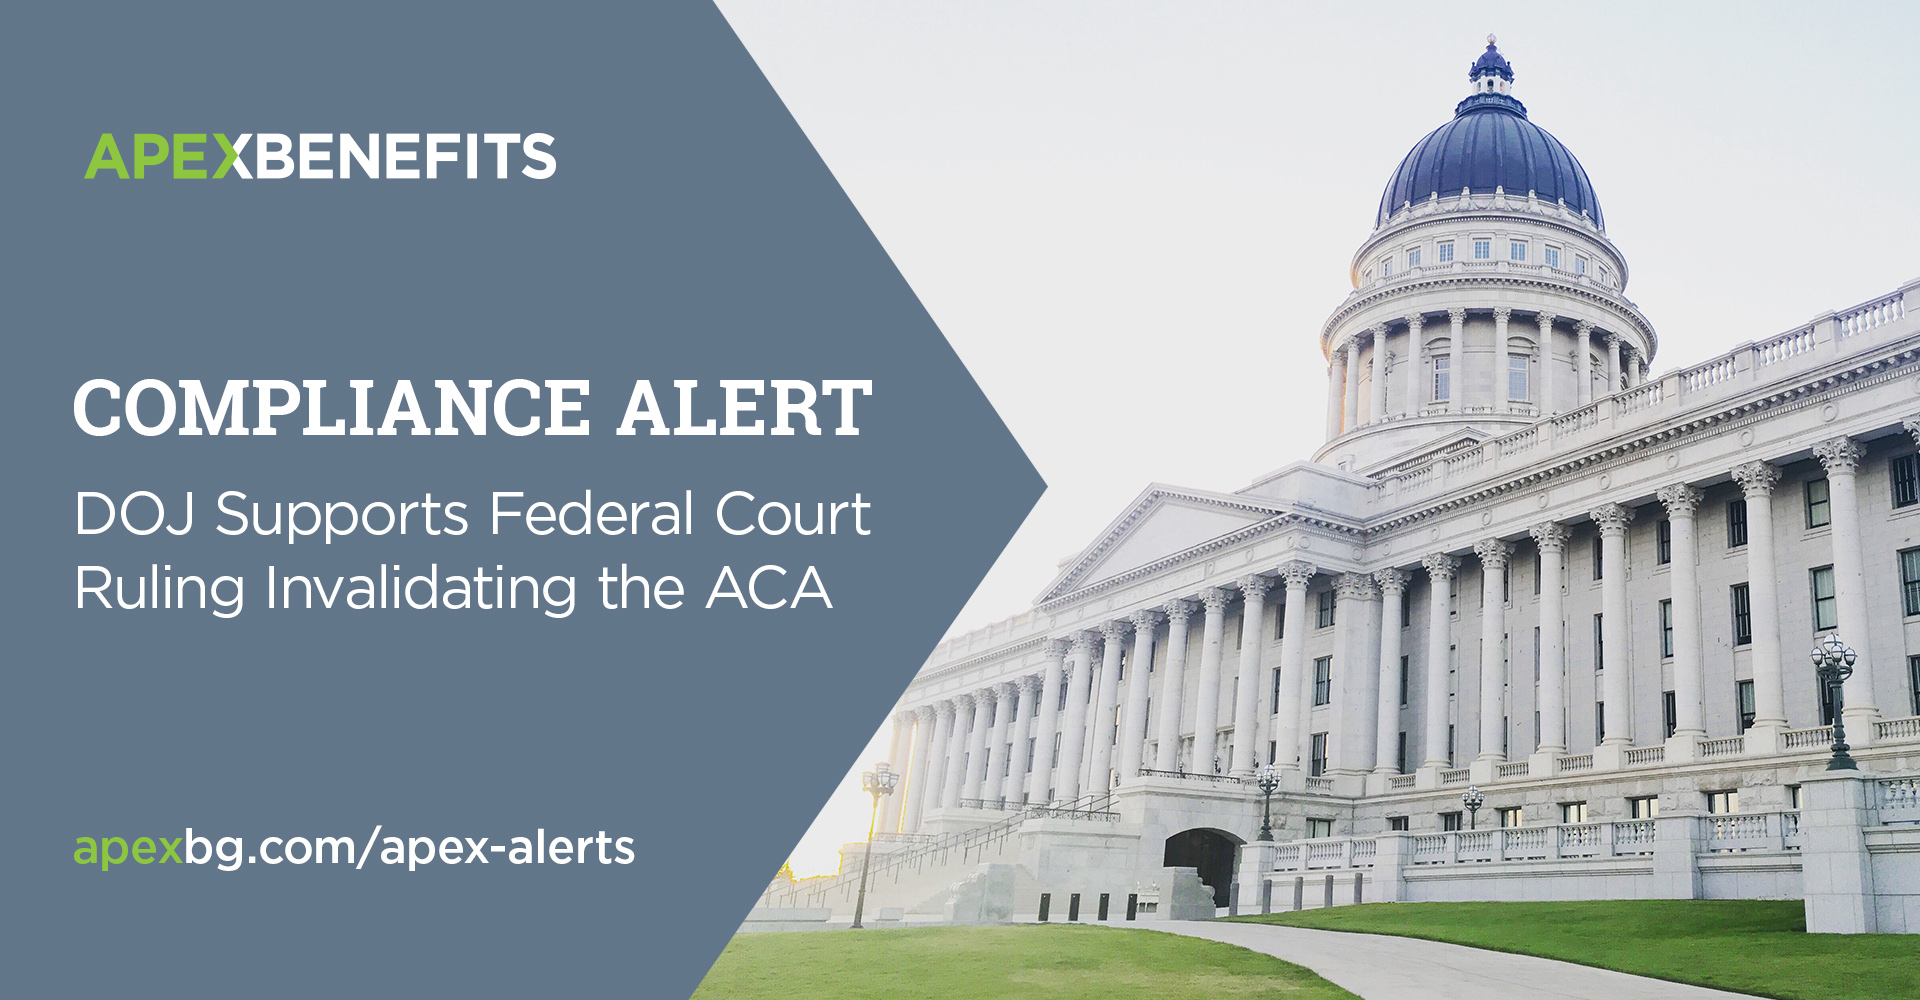 Compliance Alert: DOJ Supports Federal Court Ruling Invalidating the ACA